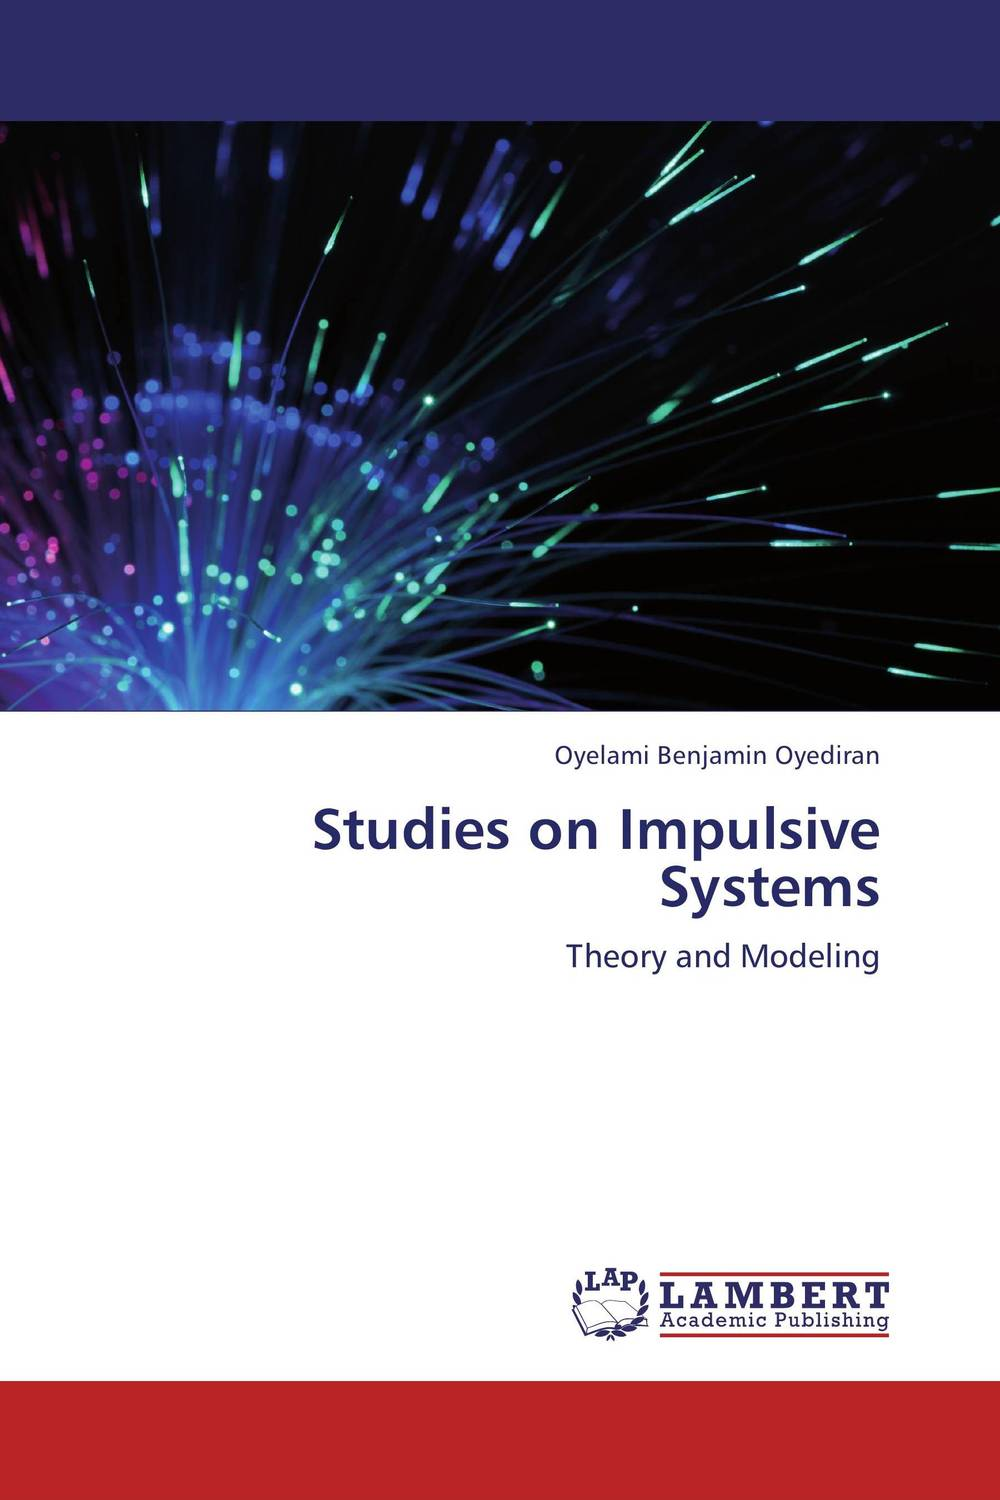 Studies on Impulsive Systems prasanta kumar hota and anil kumar singh synthetic photoresponsive systems